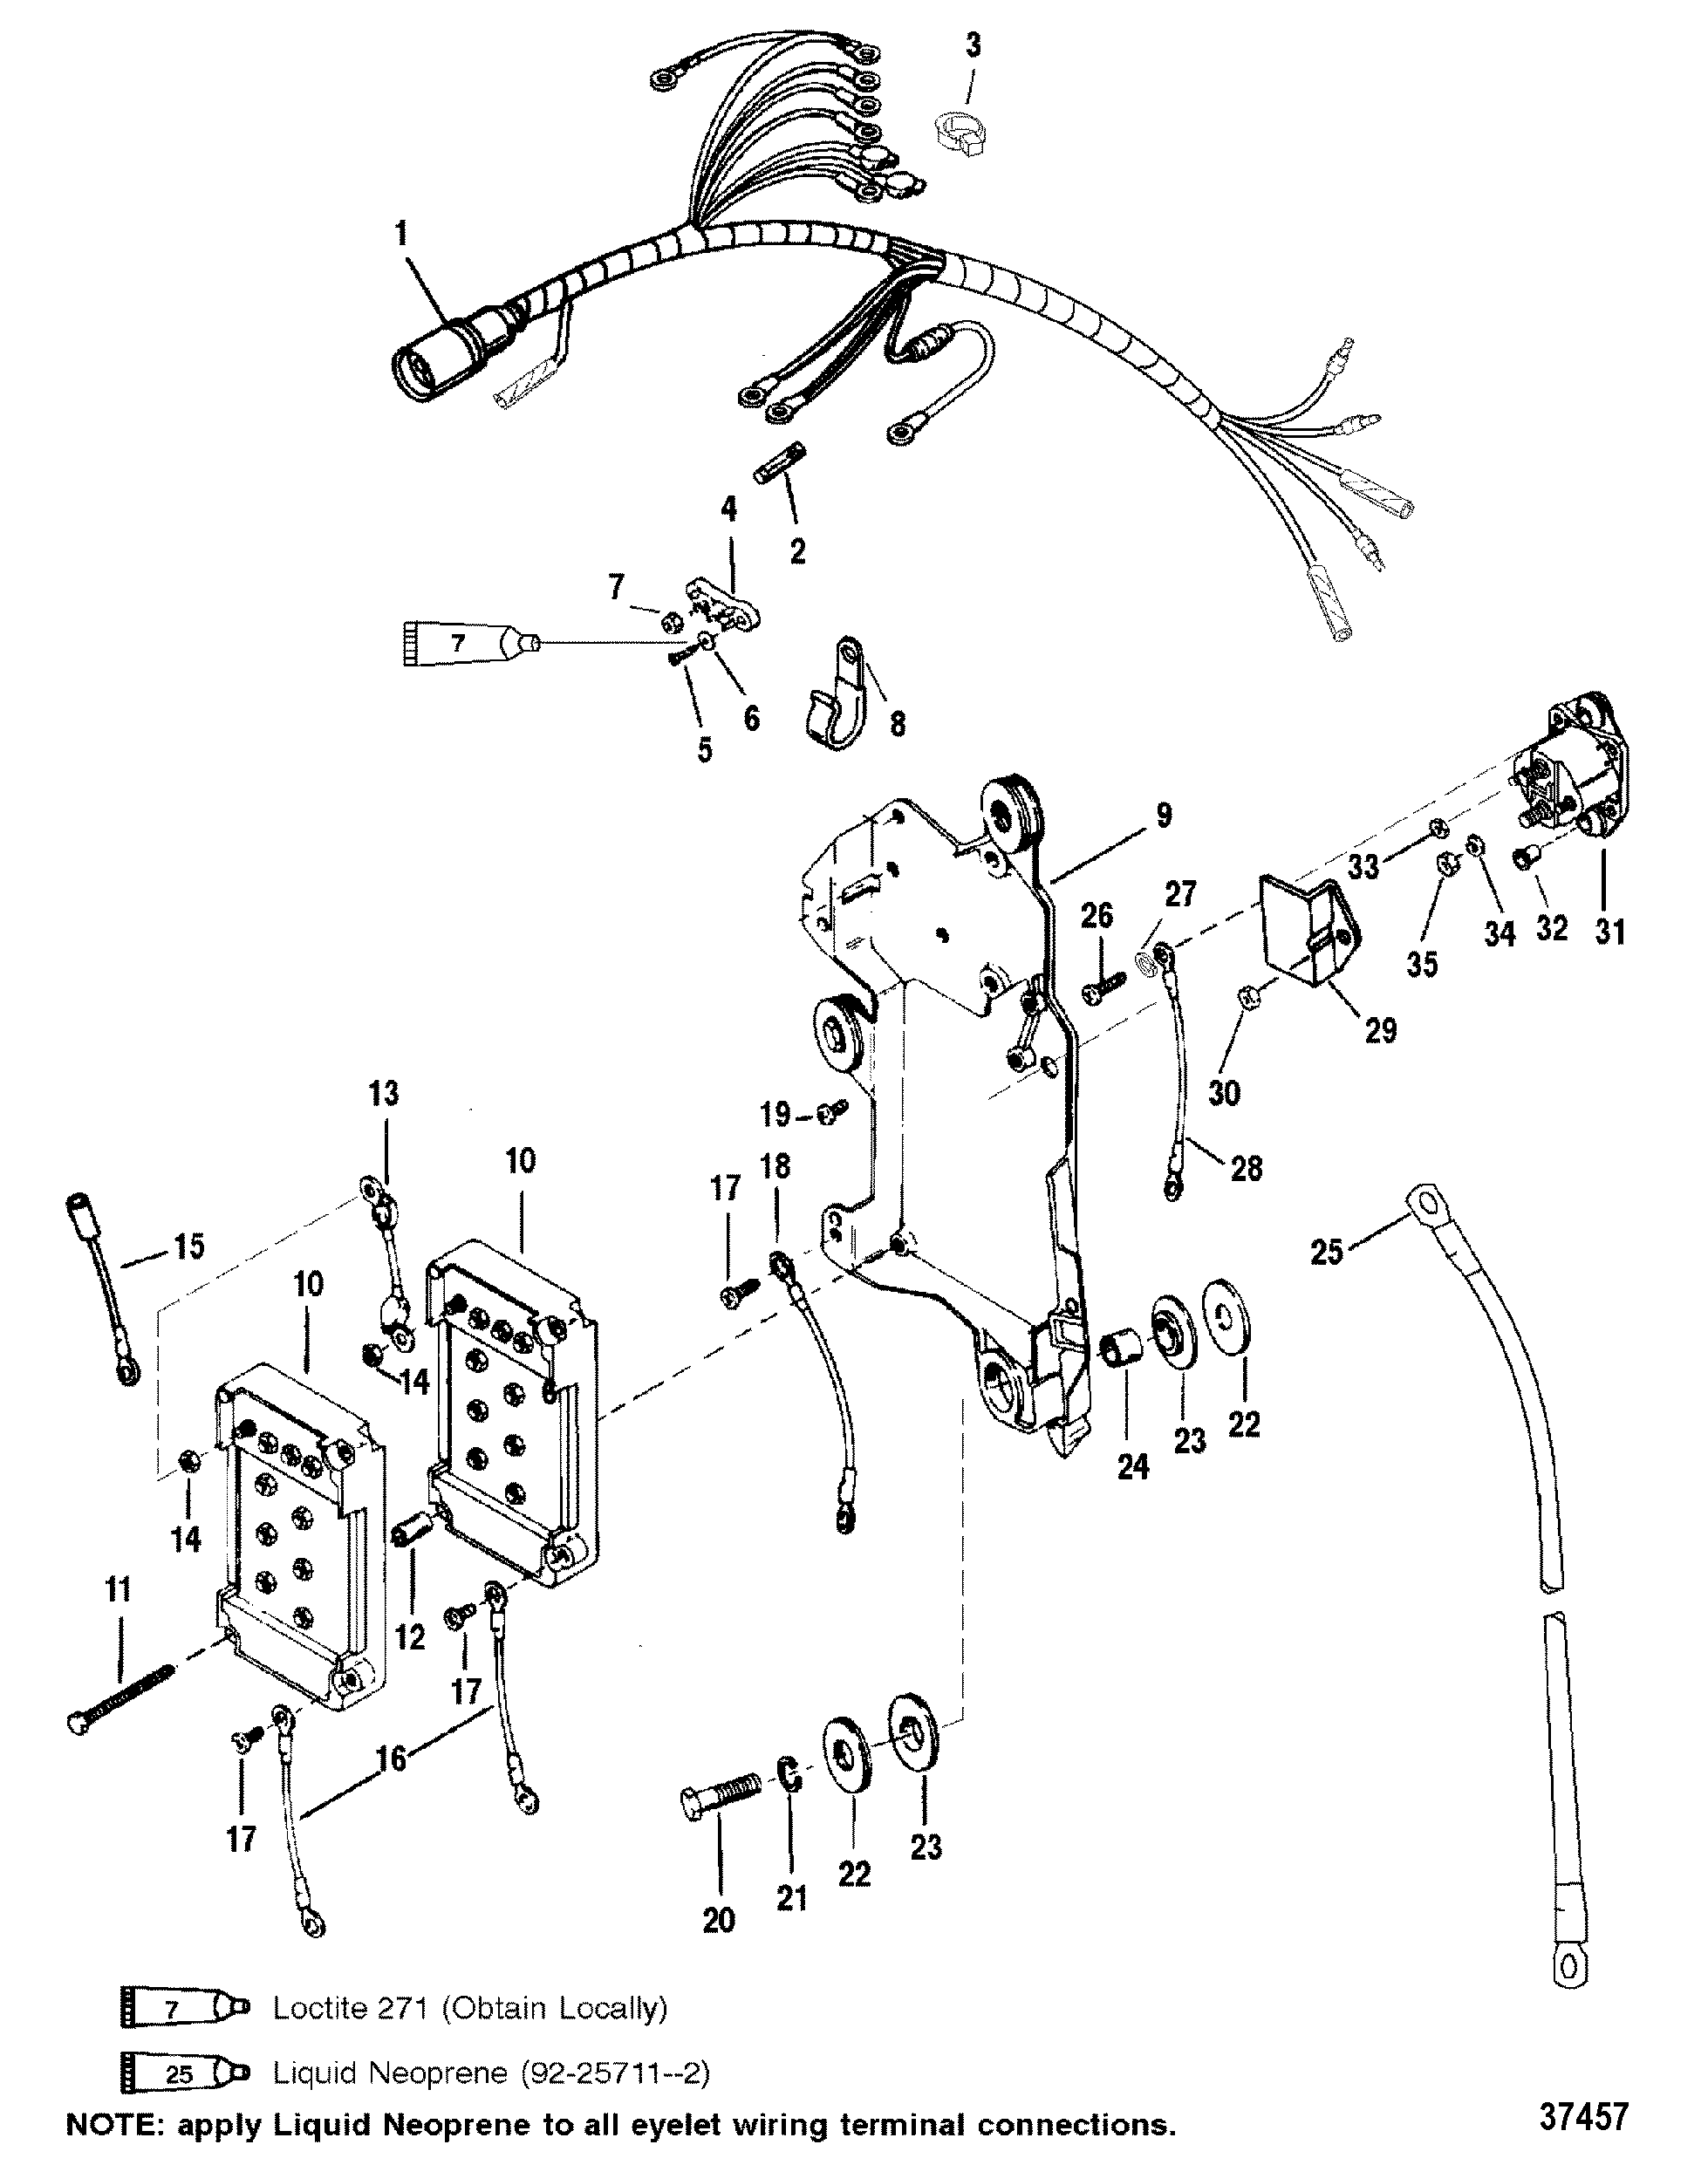 37457 wiring harness starter solenoid for mariner mercury 150 175 200 efi mercury 14 pin wiring harness diagram at crackthecode.co